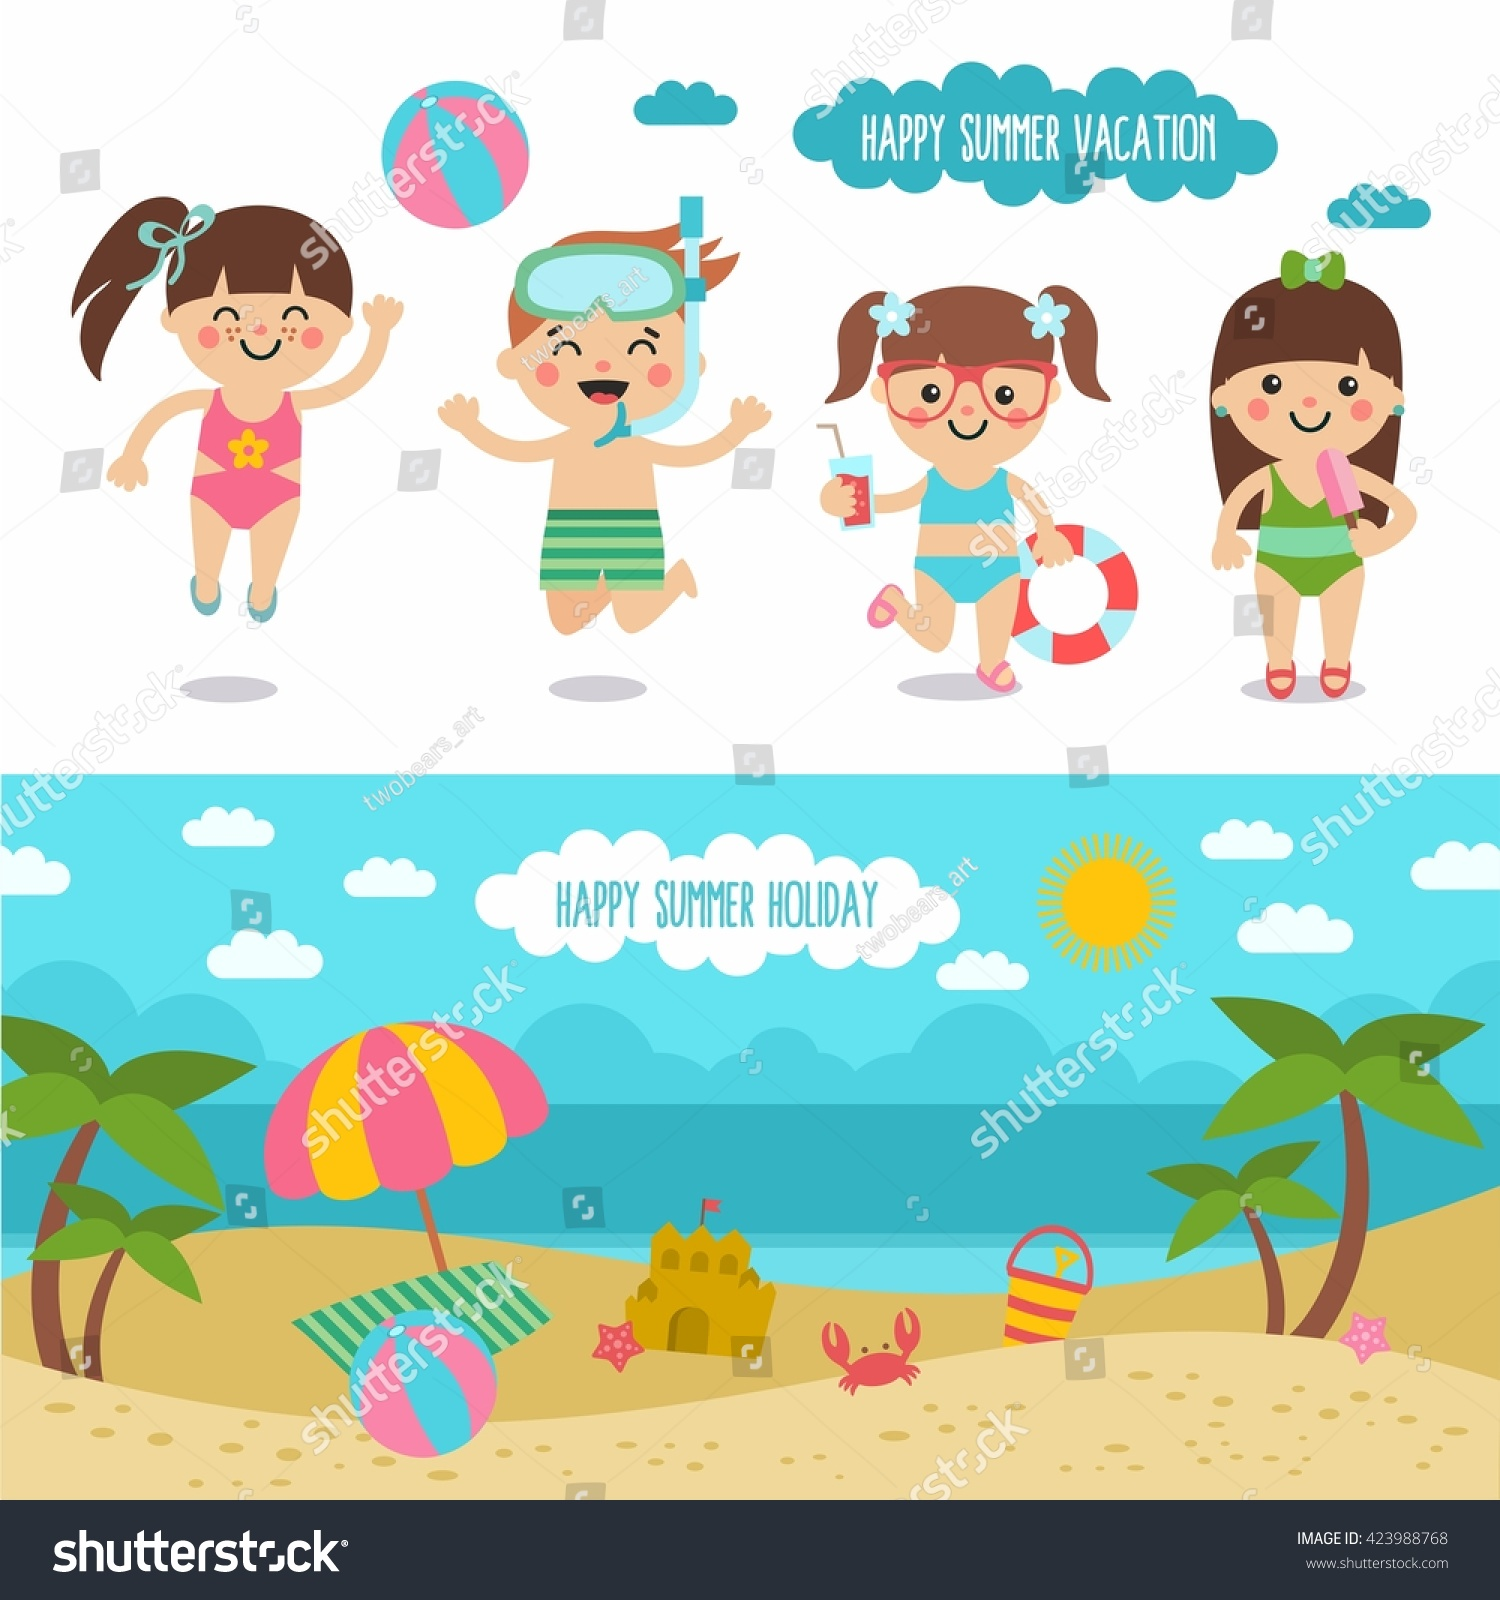 Happy Summer Vacation Awesome Cartoon Beach Landscape And Funny Kids Character Boys Girls